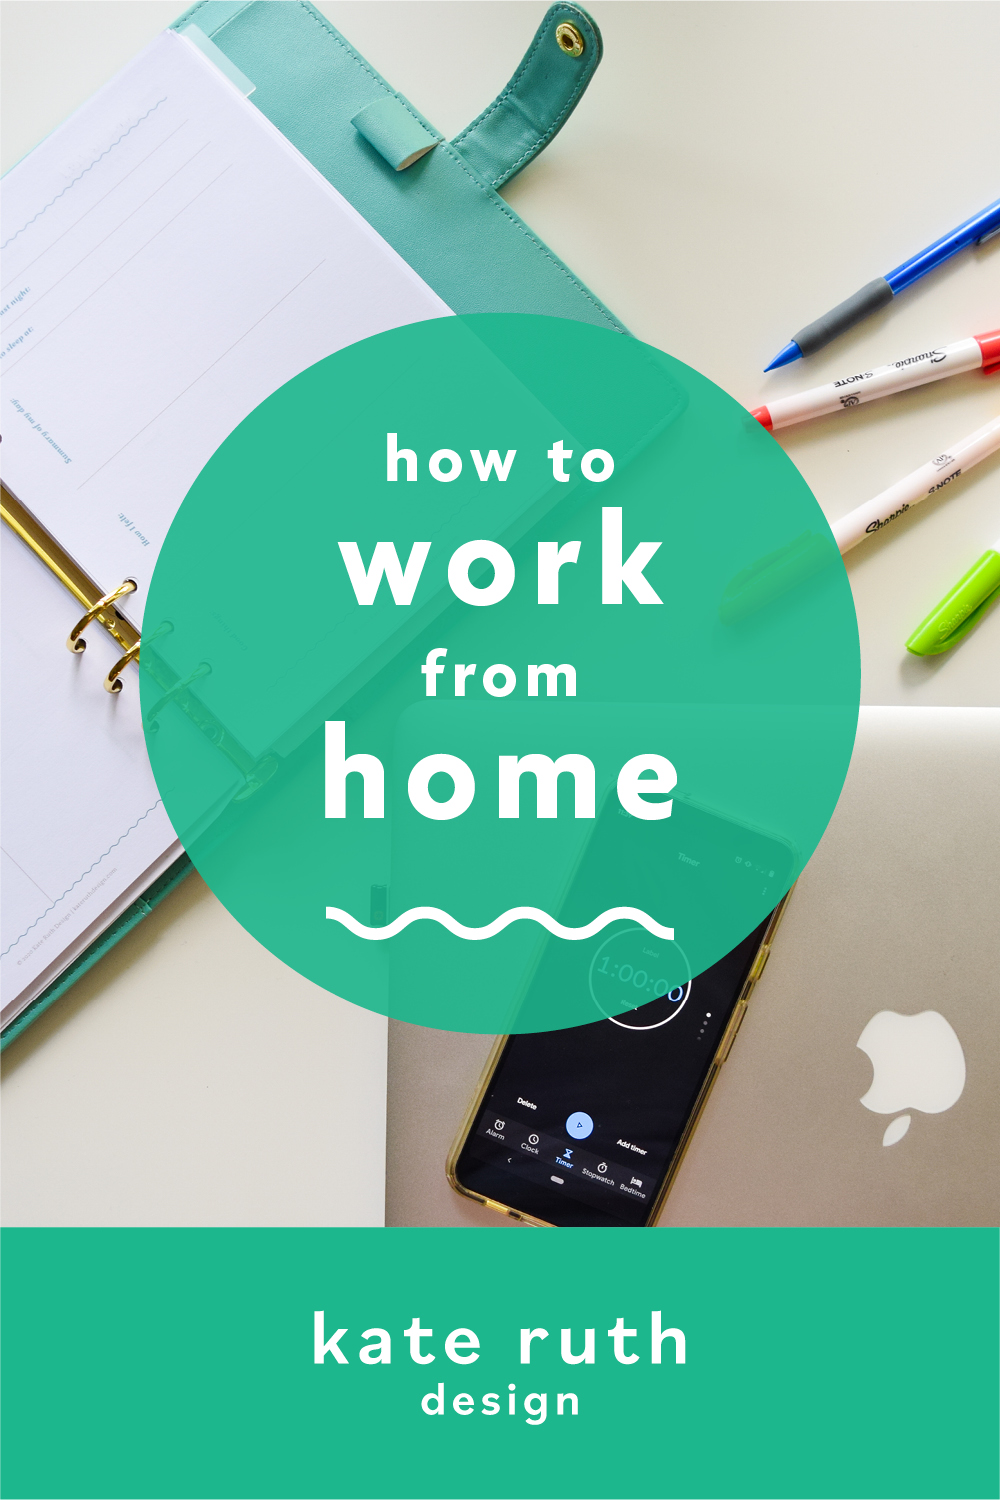 """photo of desk with planner, computer, phone timer, and pens with the text: """"how to work from home"""""""